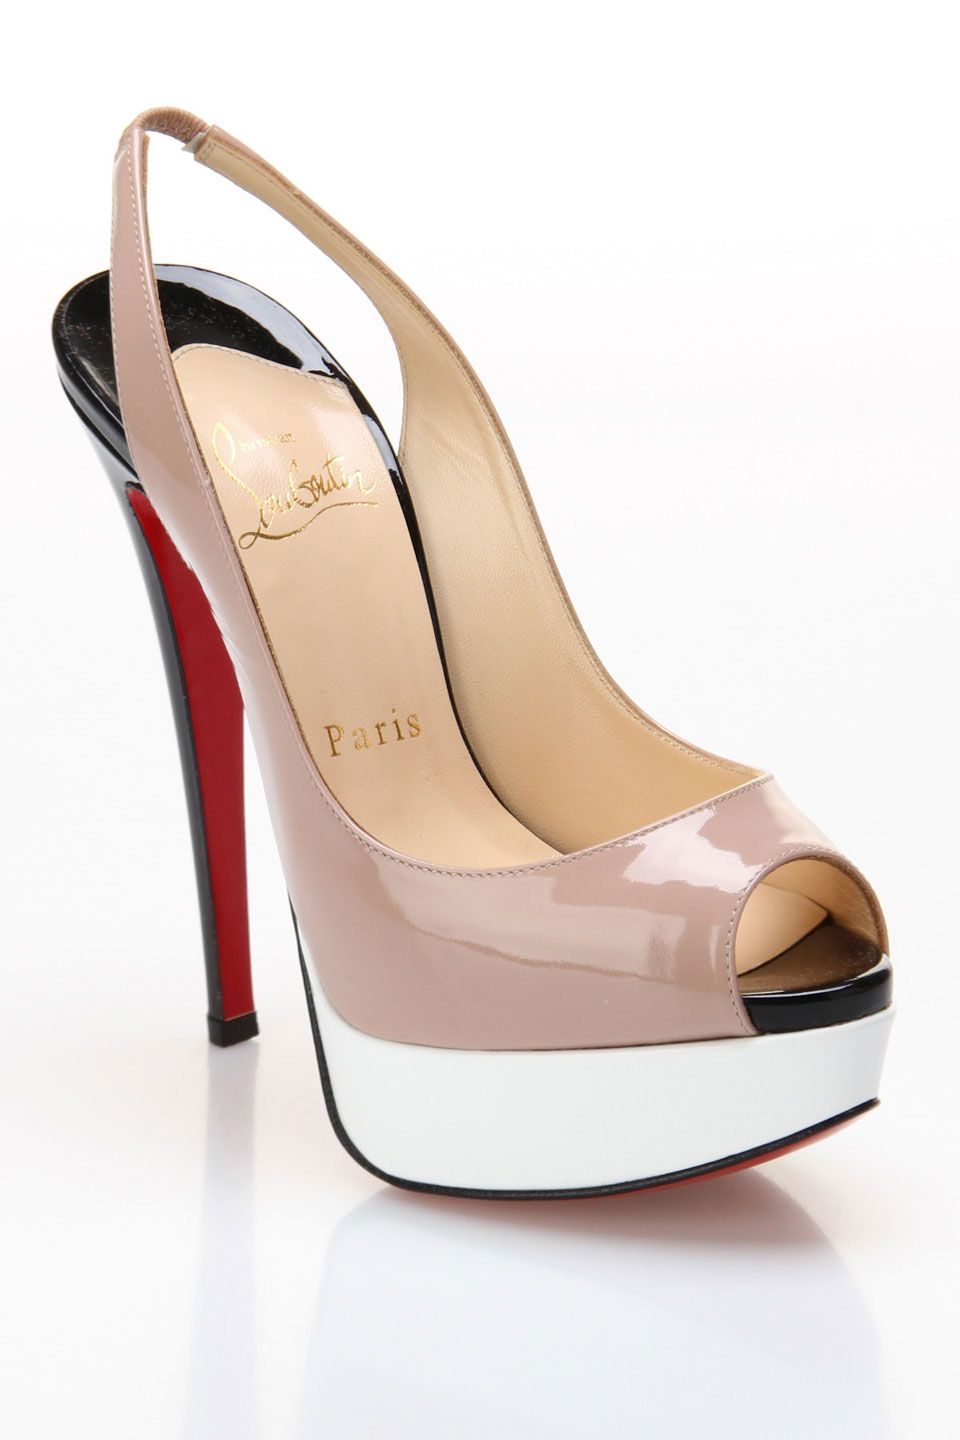 c7c7d4dfb8c Louboutin Lady Peep 150 Slingback Sandal In Nude   GORGEOUS!